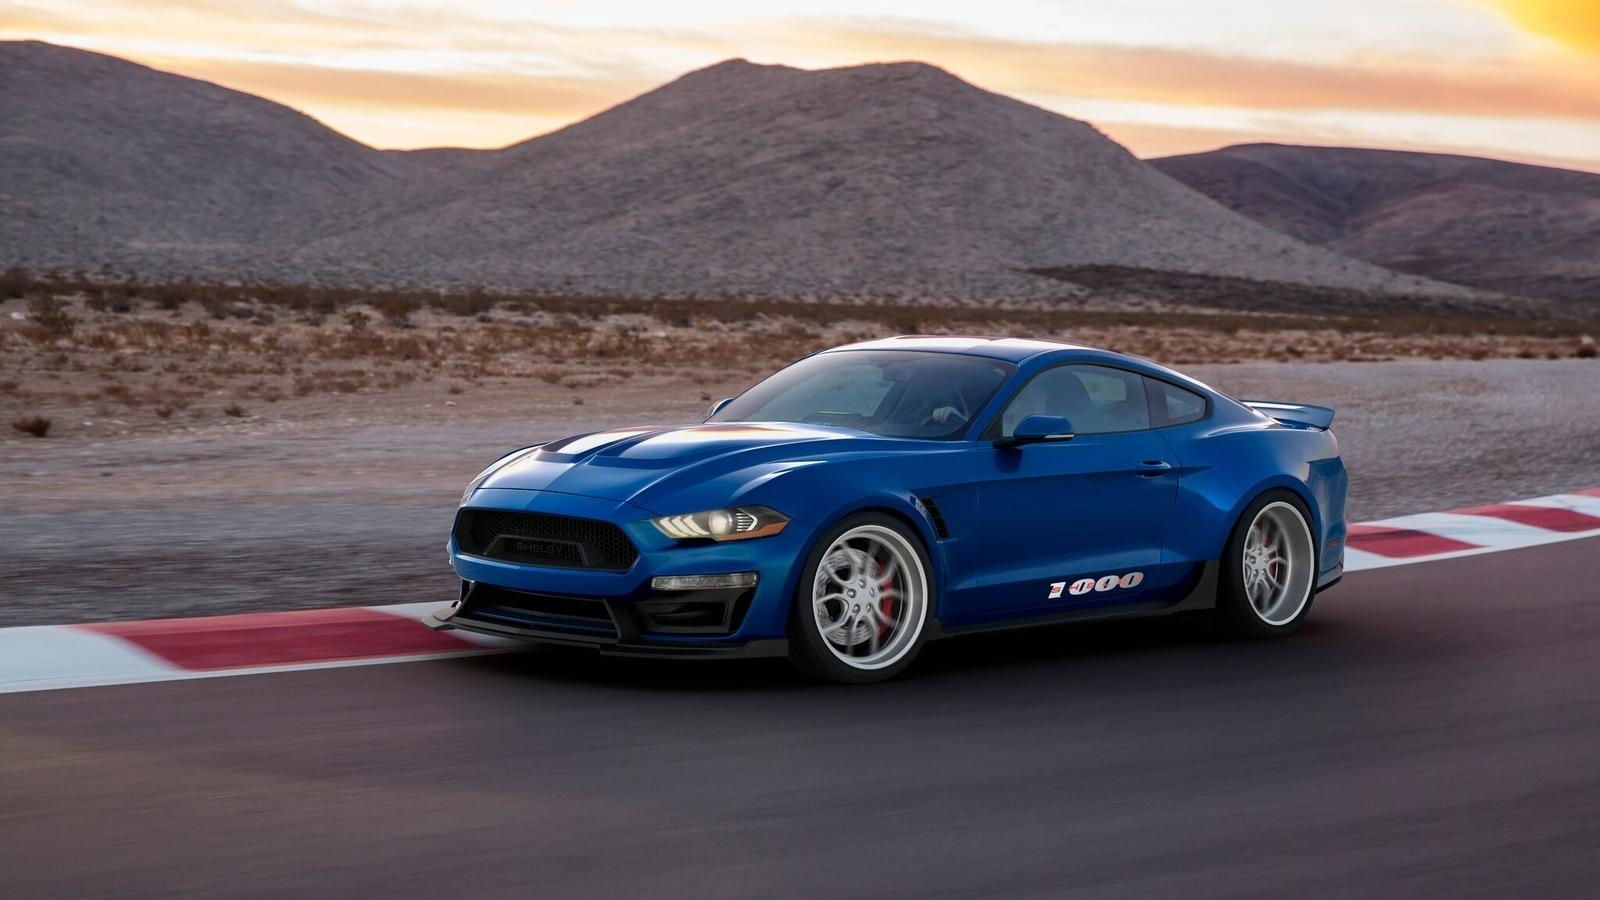 Ford Ka Drift >> 2019 Ford Mustang Shelby Gt350 | 2017, 2018, 2019 Ford Price, Release Date, Reviews